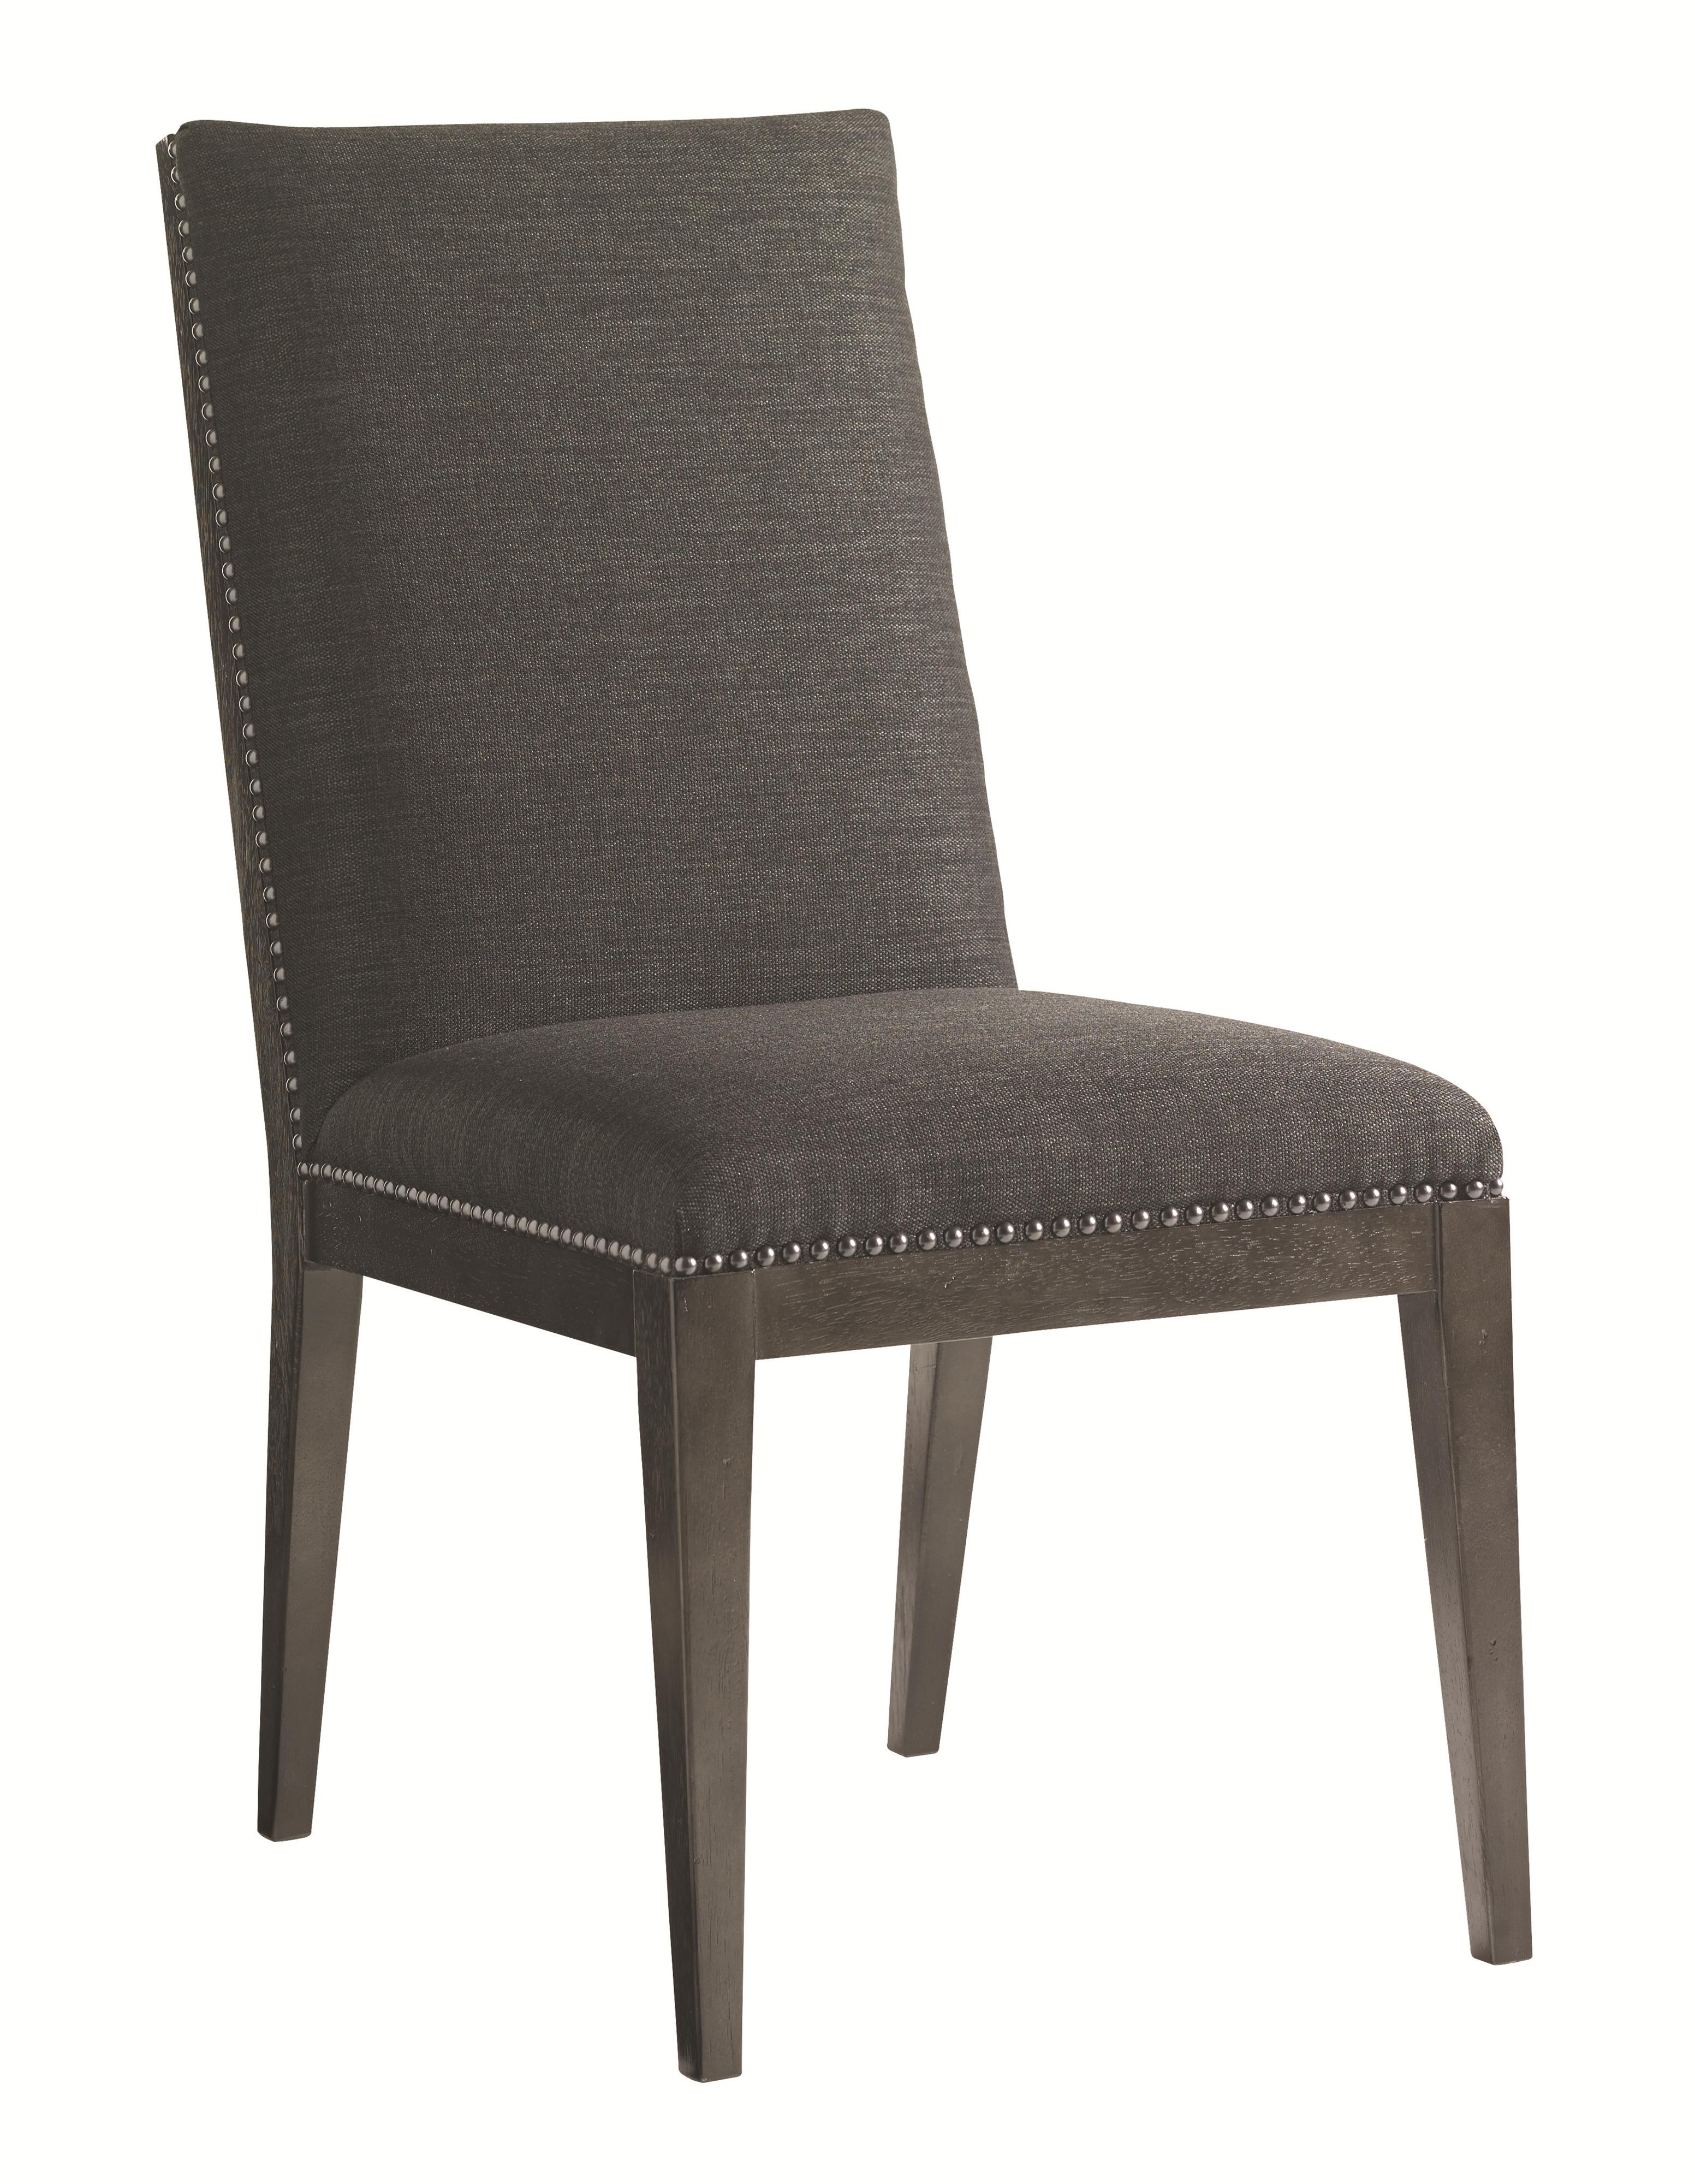 Carrera Vantage Upholstered Side Chair by Lexington at Johnny Janosik